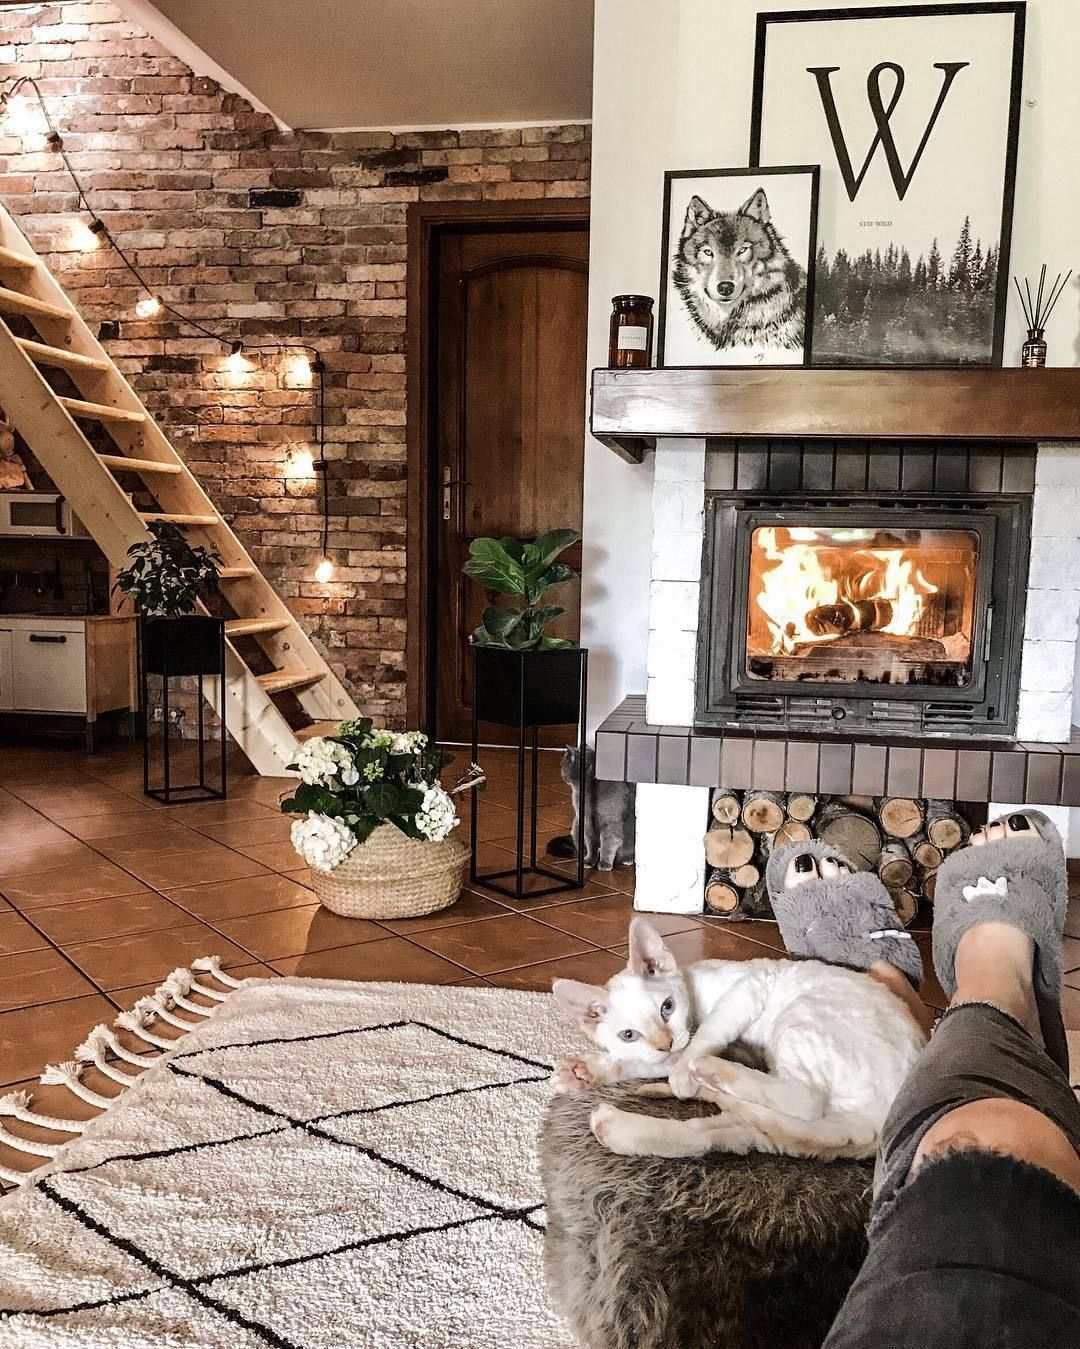 Home Interior Design Cozy With A Cat By The Side Cozy House